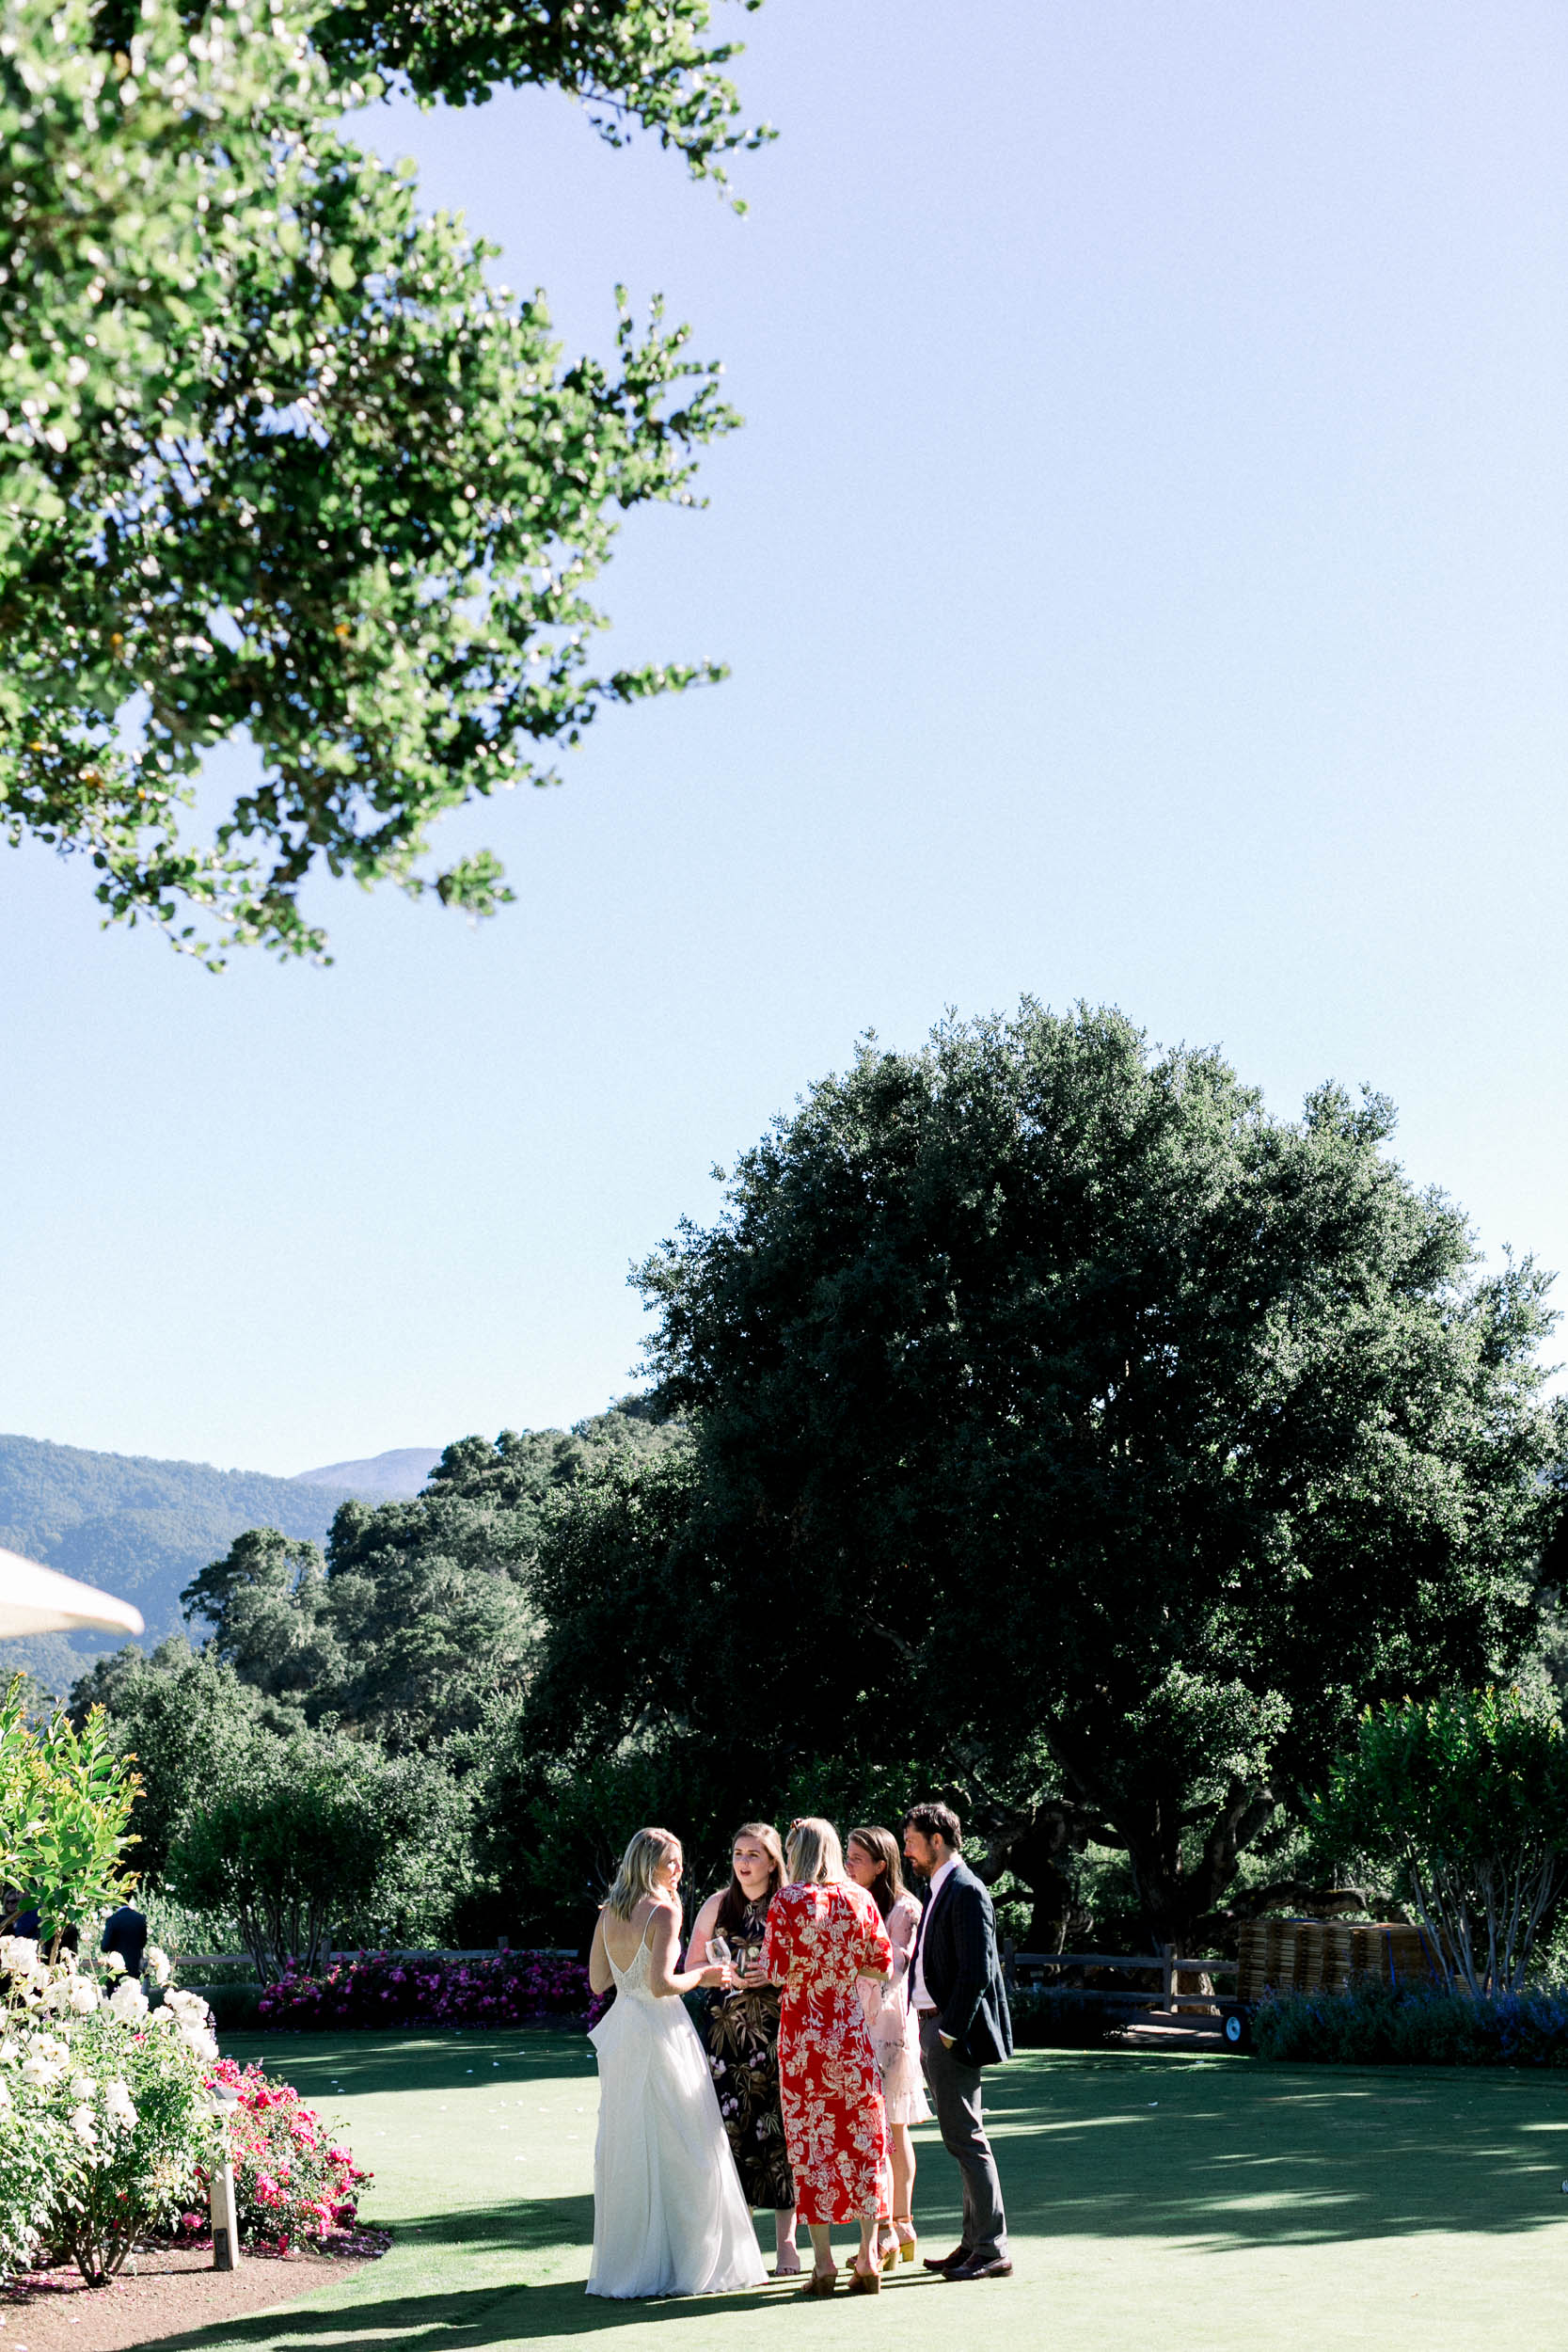 C+D_Holman Ranch Wedding_Carmel Valley_Buena Lane Photography_060619_ER419.jpg